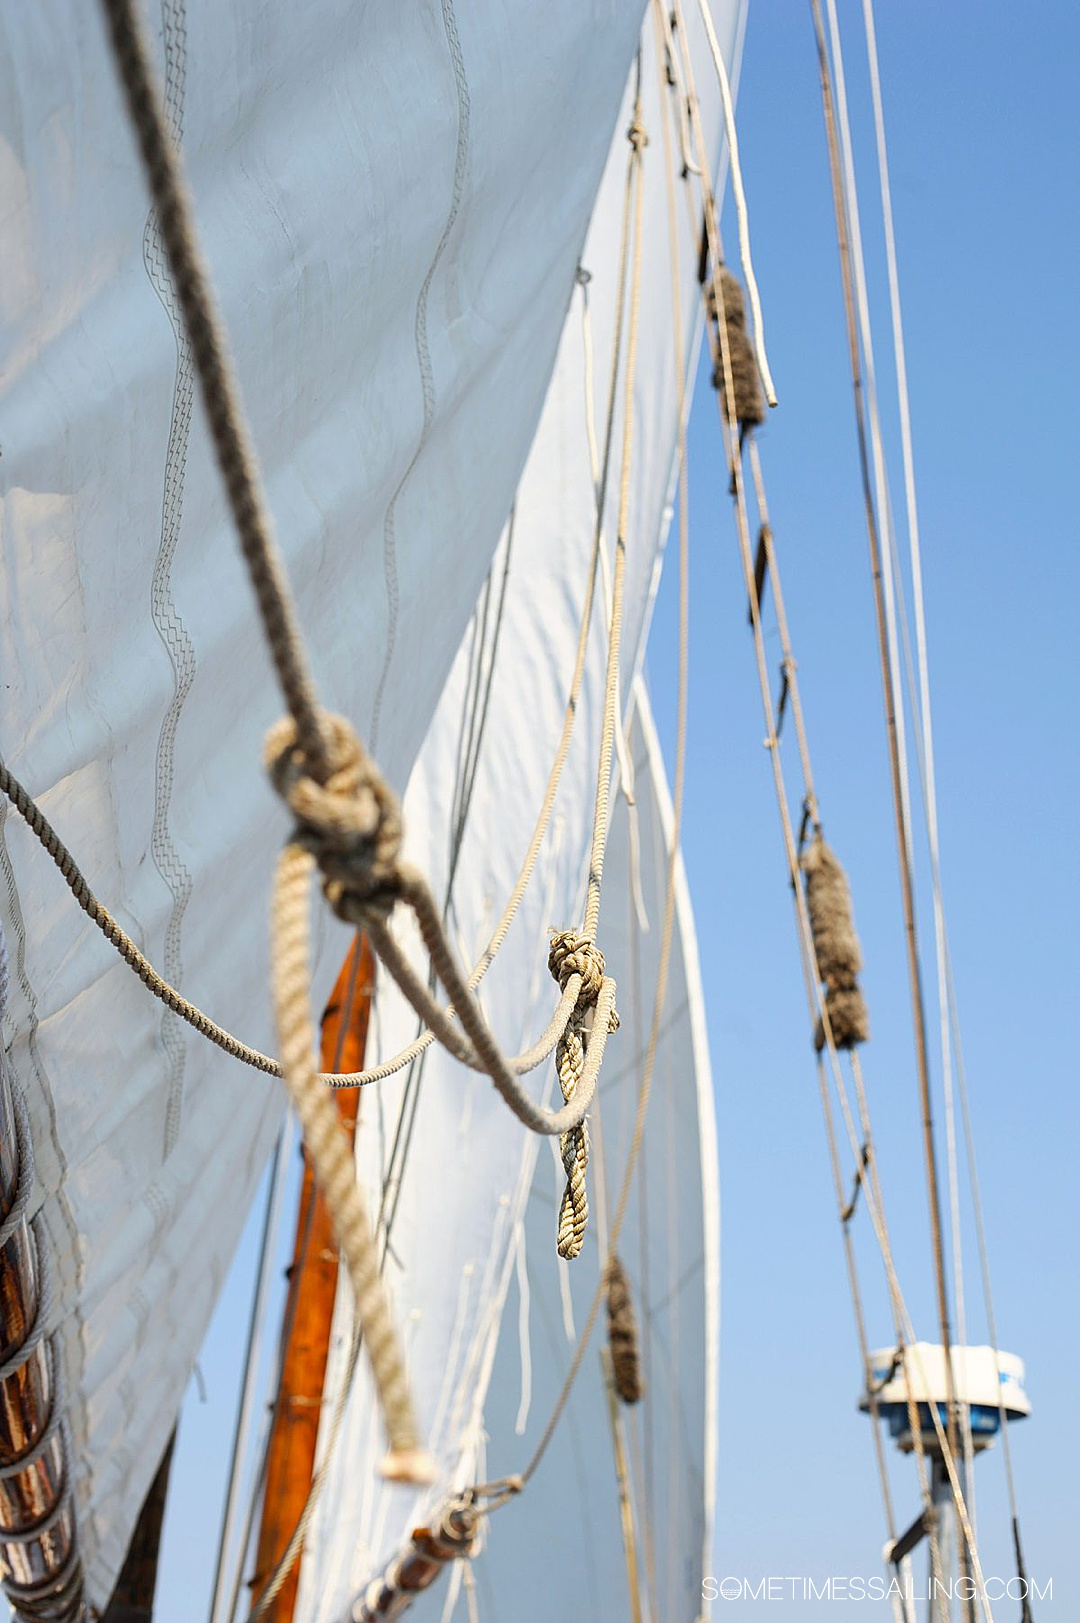 Cruise ship terms you need to know. Sails and lines on a sailboat.